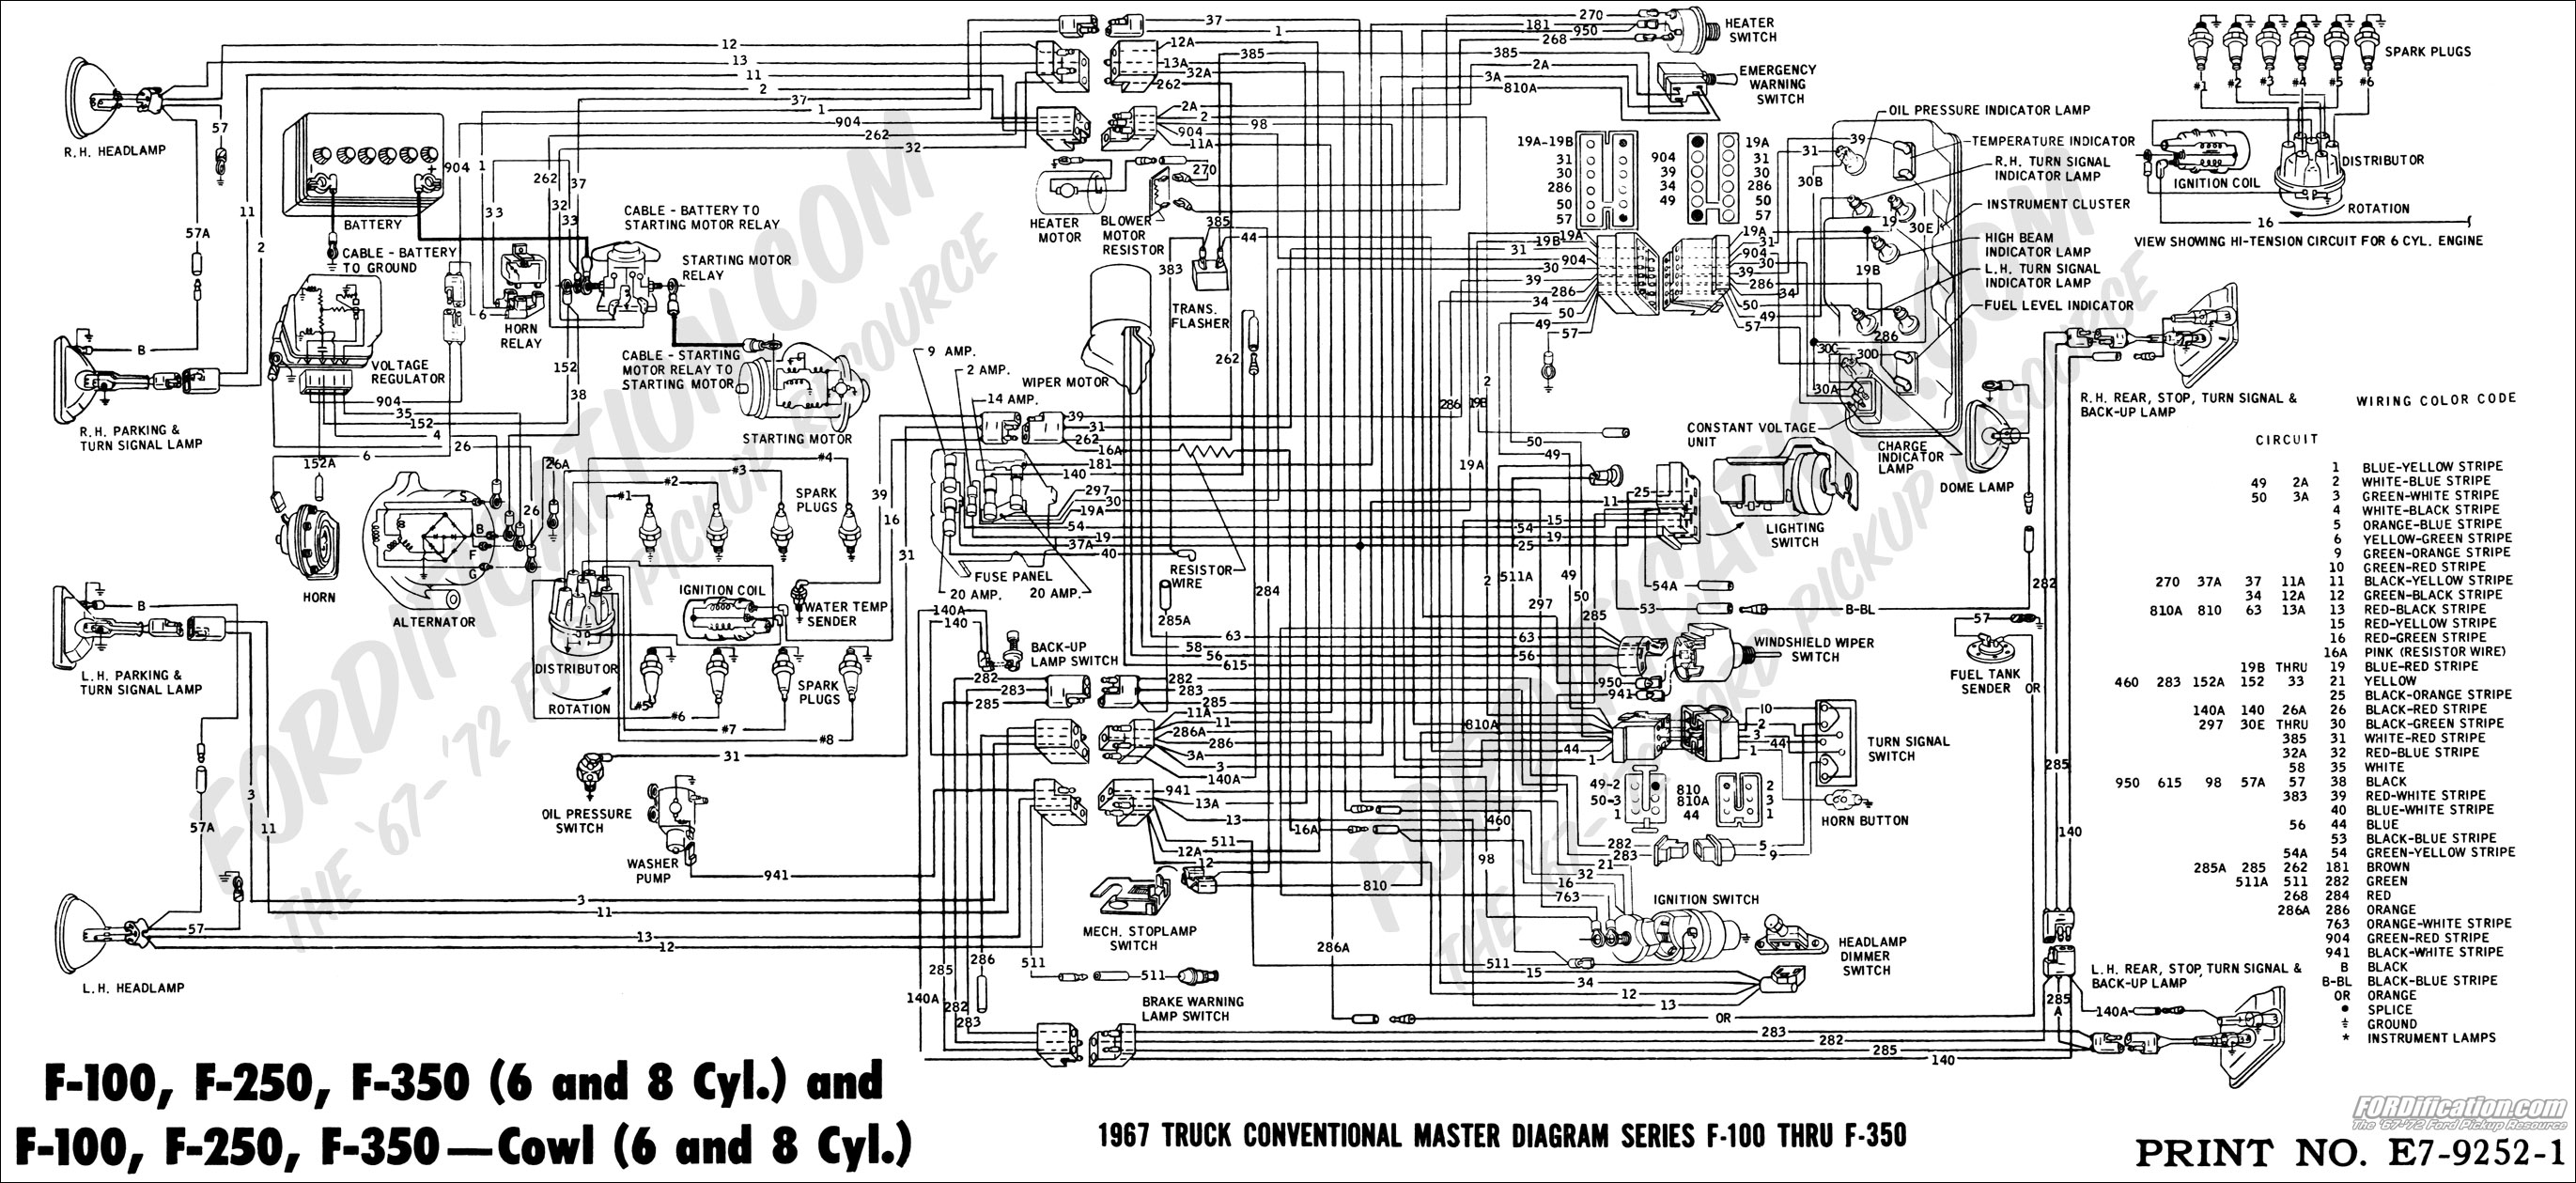 67masterdiagram ford truck technical drawings and schematics section h wiring ford wiring schematics at eliteediting.co